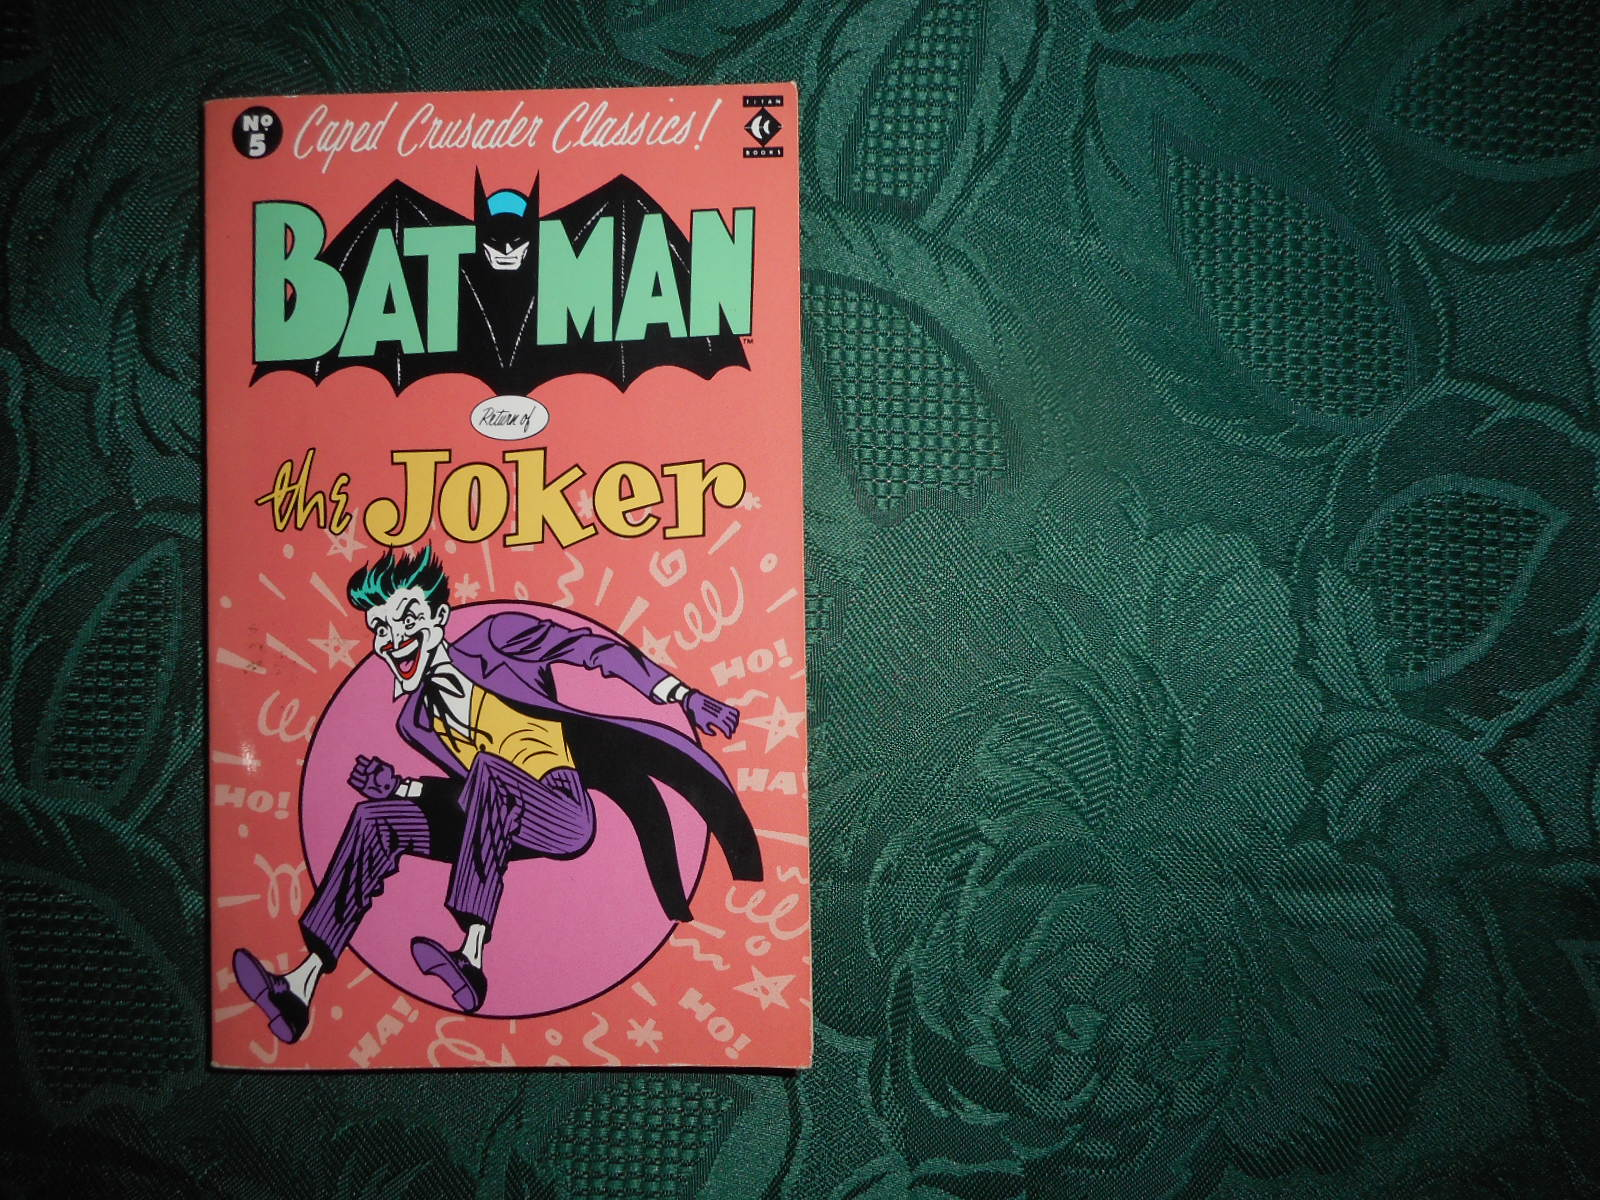 Image for Batman Return of the Joker Caped Crusader Classics No 5